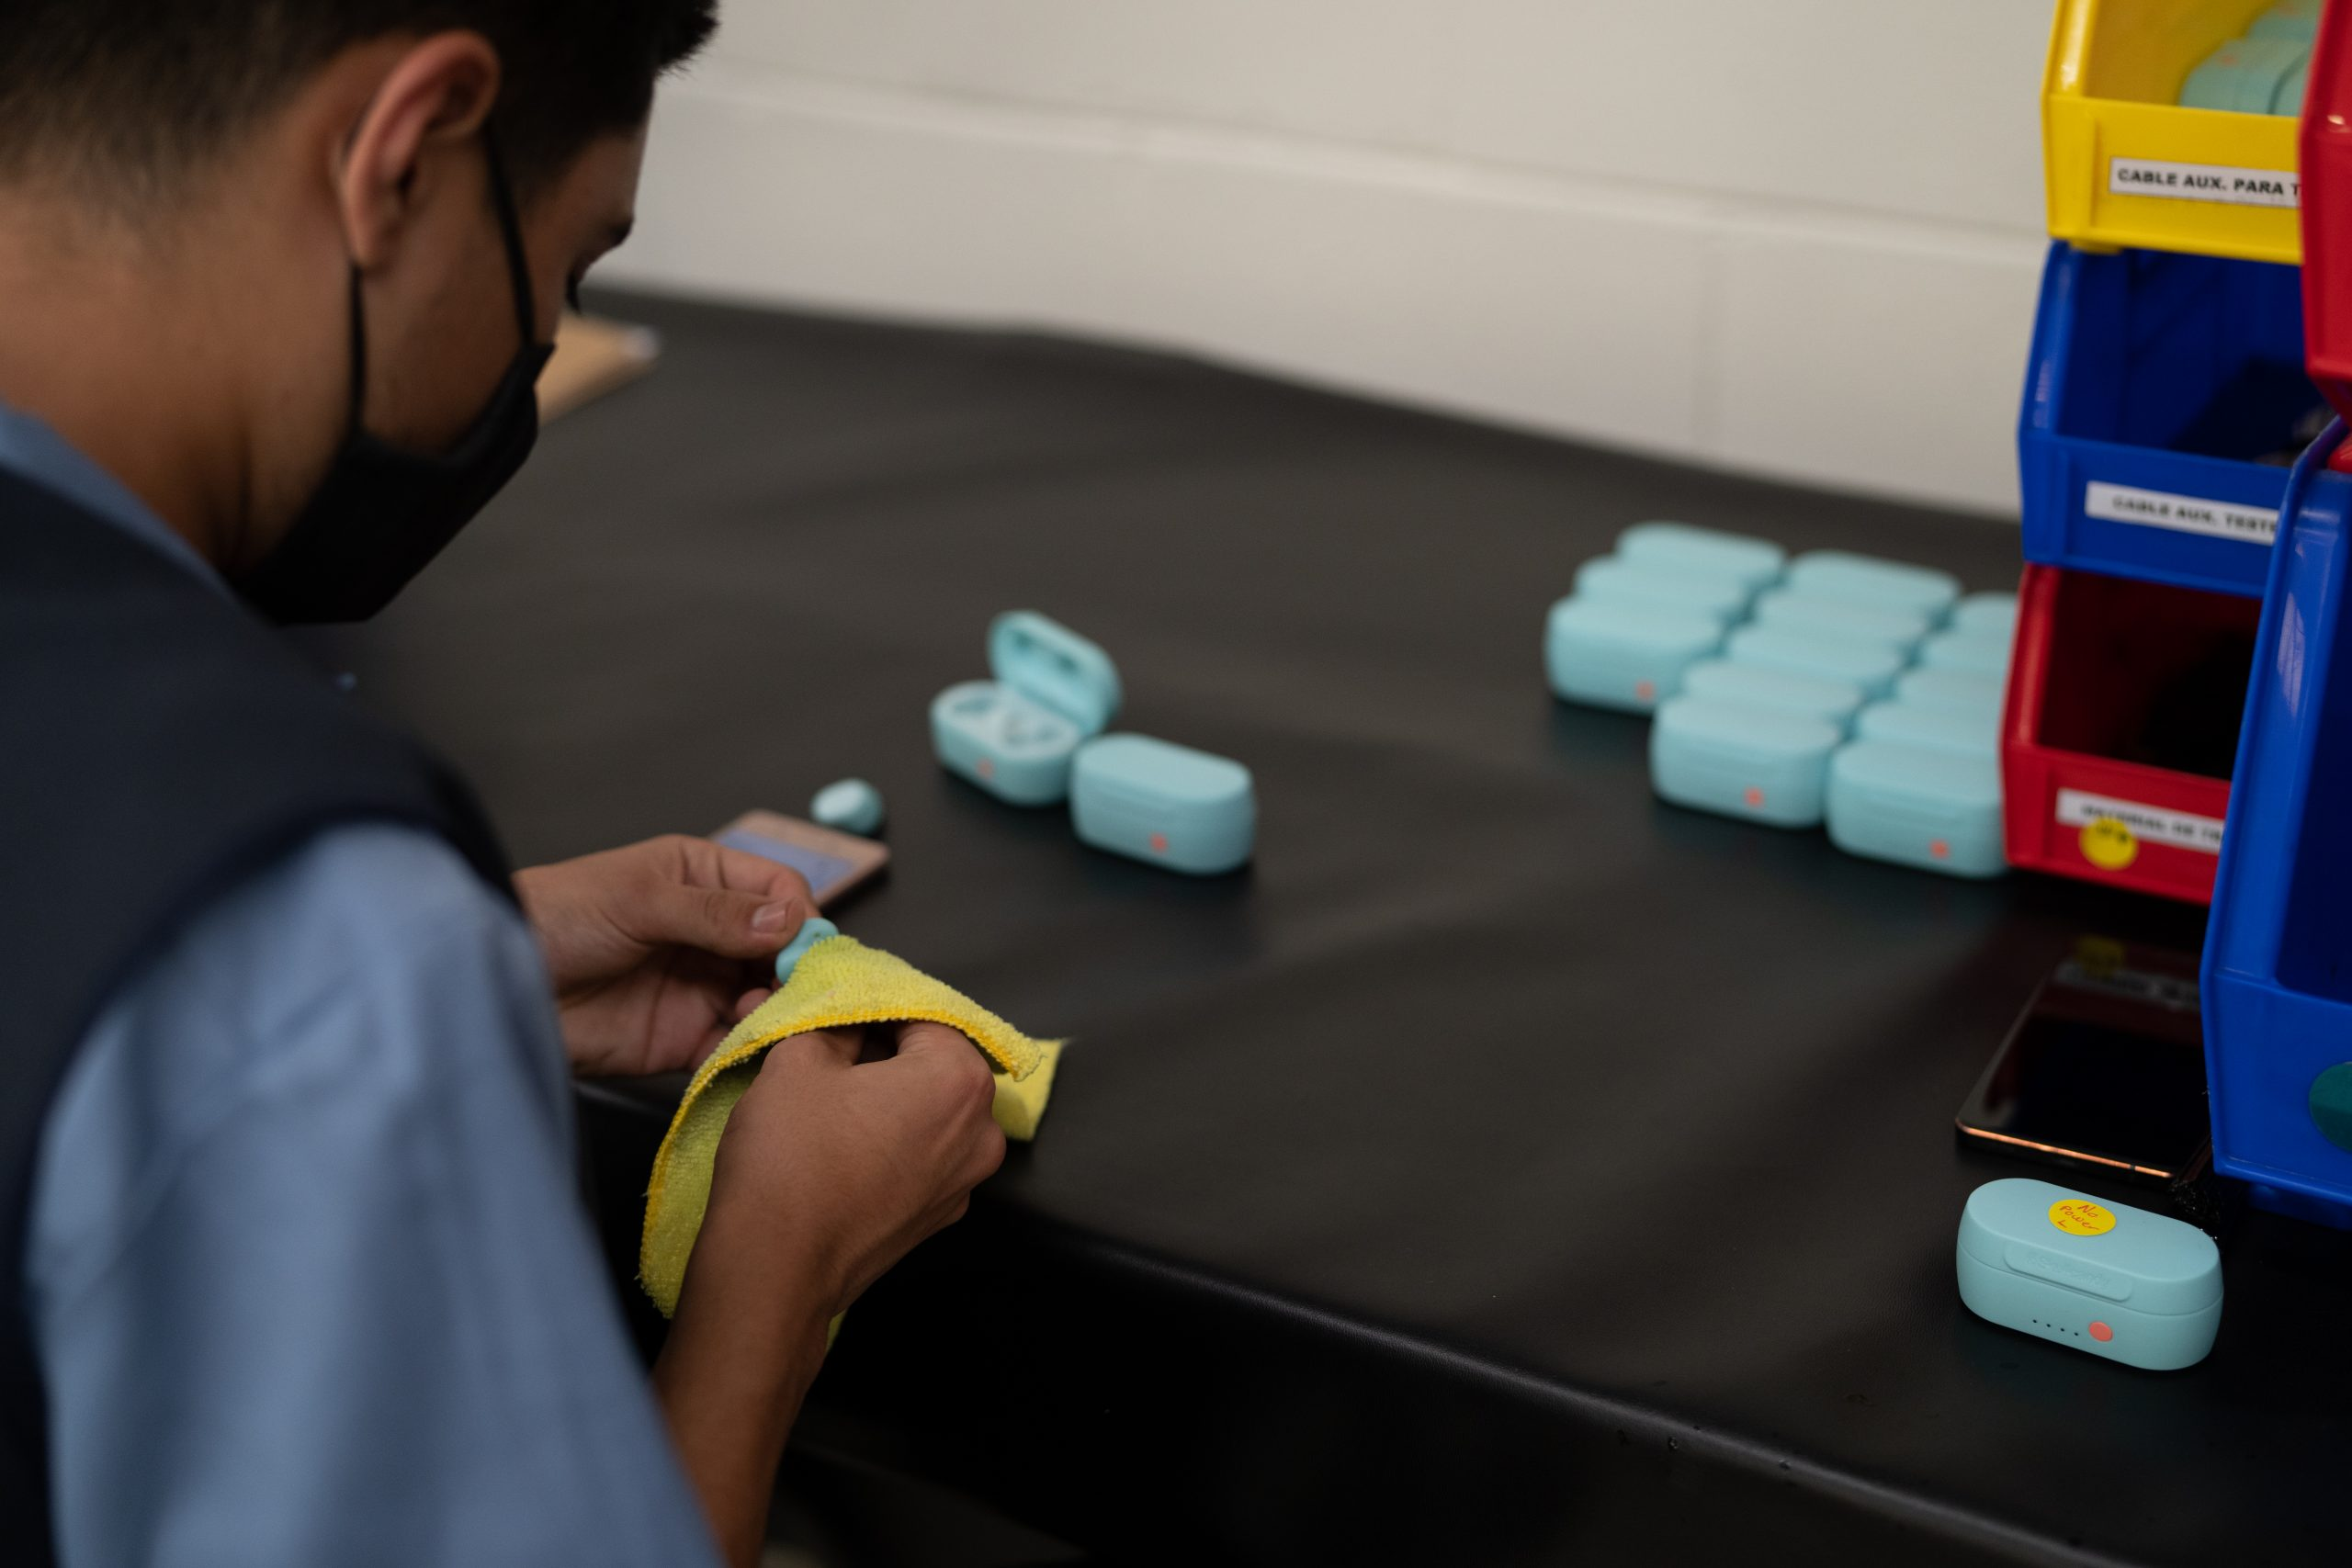 A worker cleaning upcycled Skullcandy earbuds with the charging case.